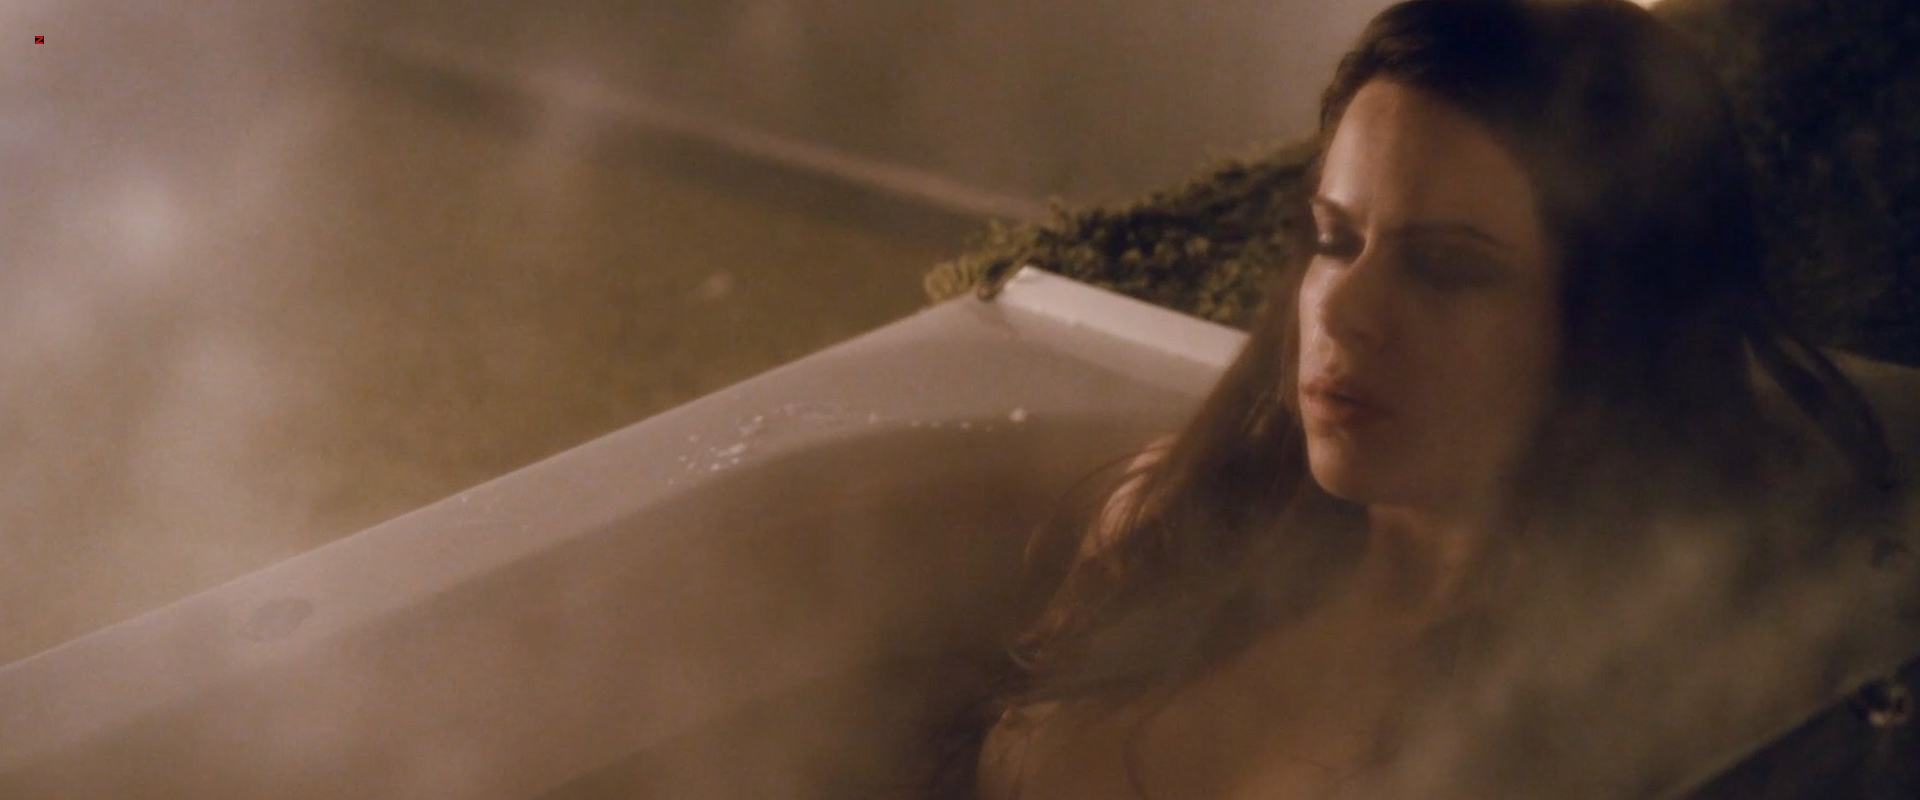 Emily hampshire naked